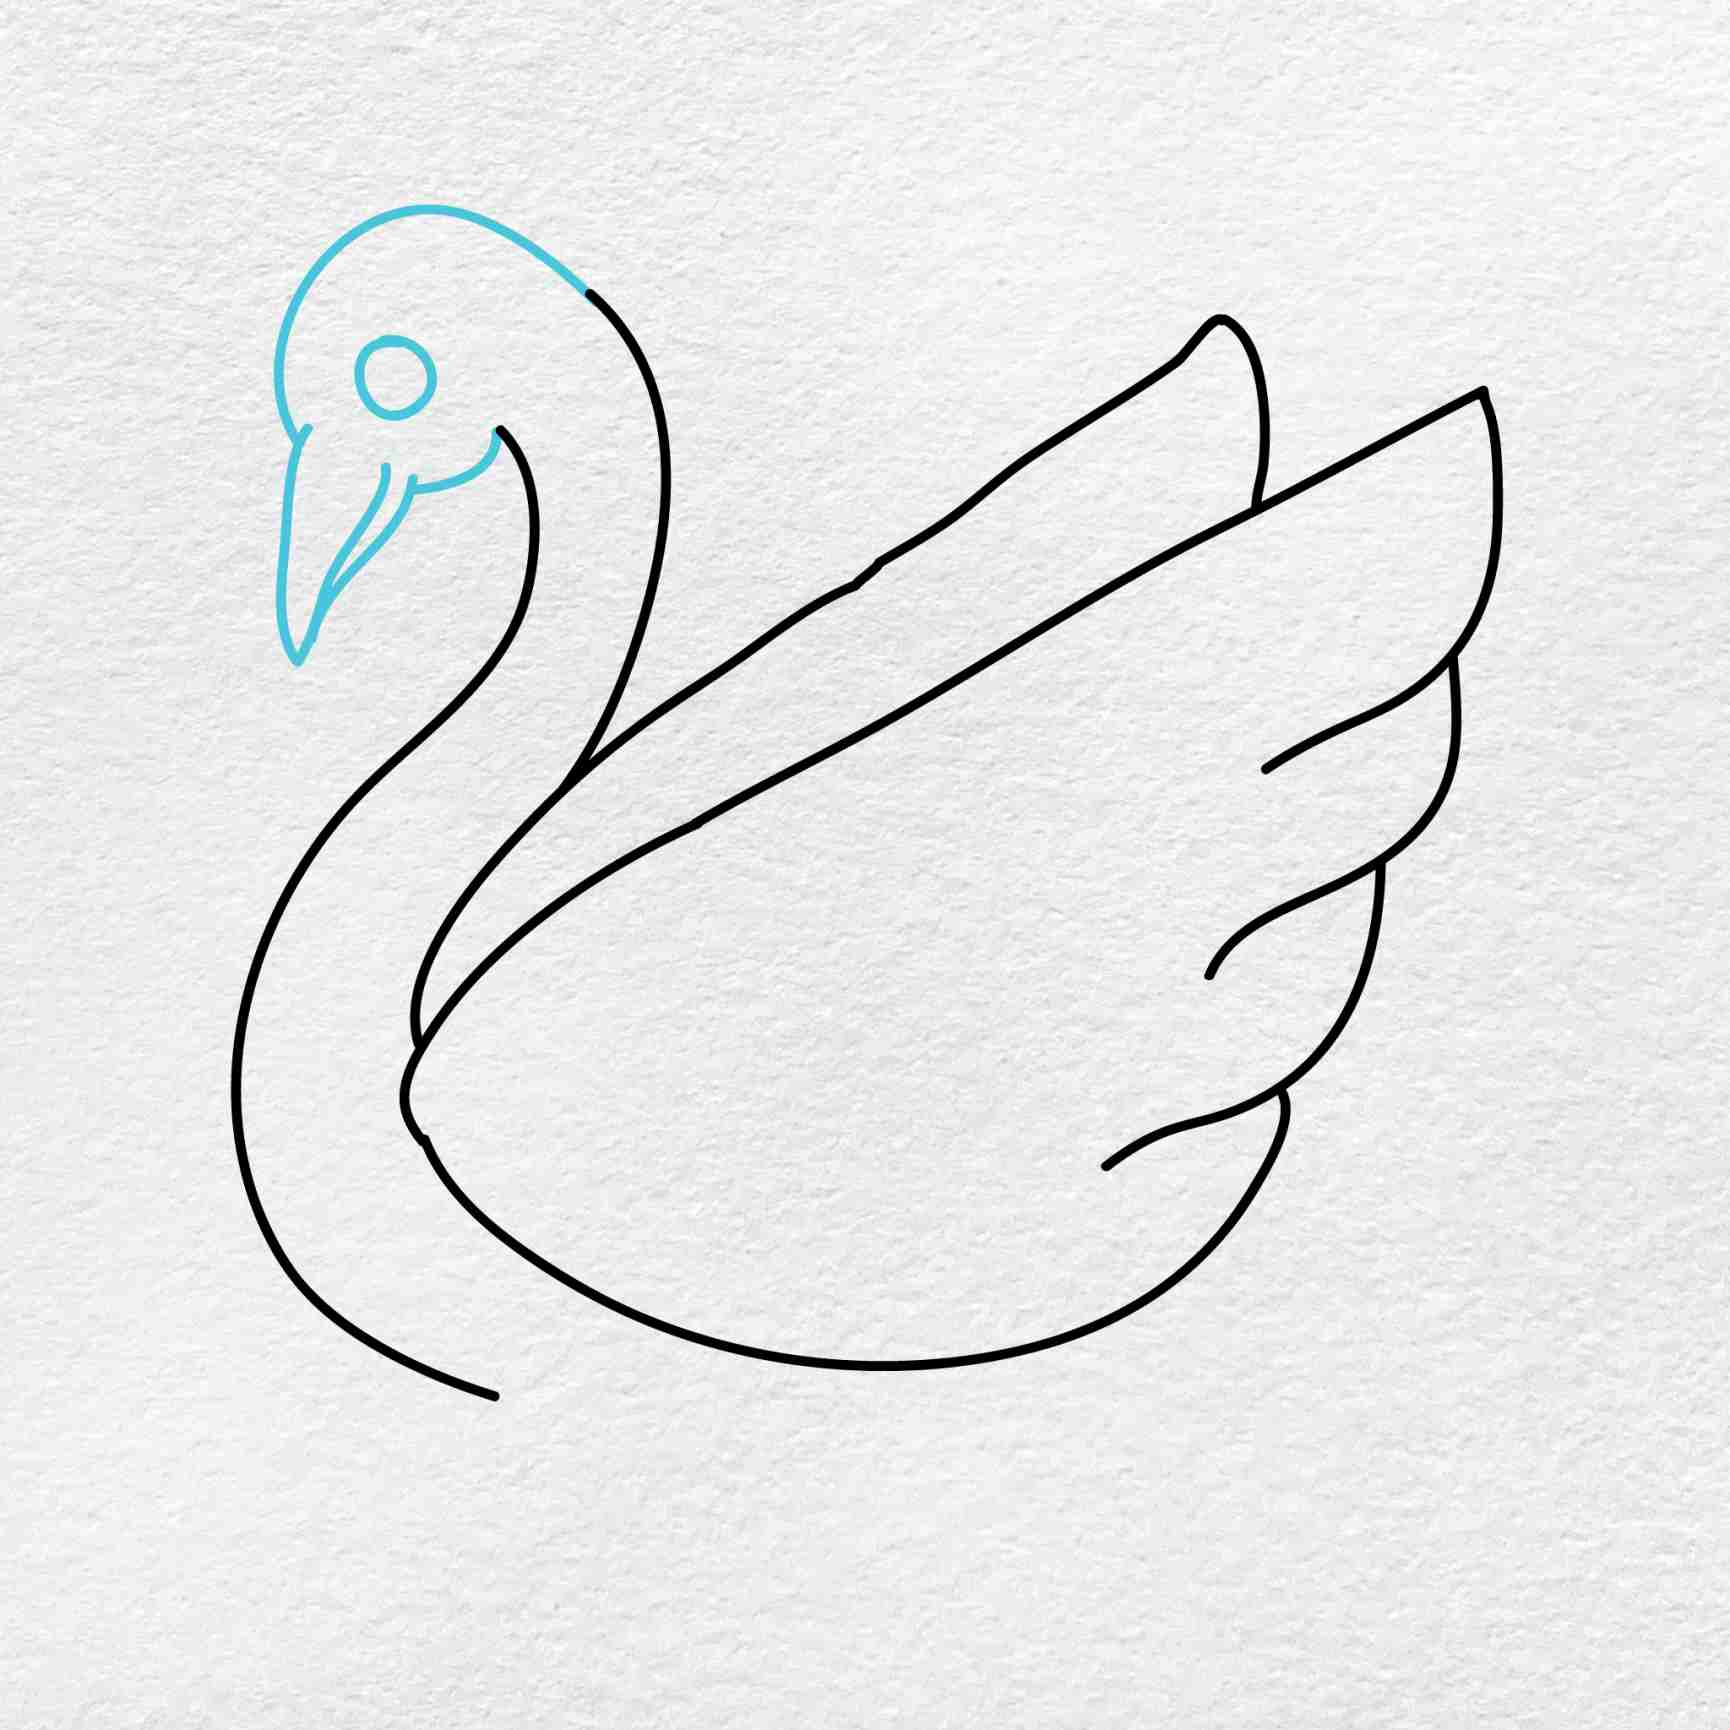 How To Draw A Swan: Step 4